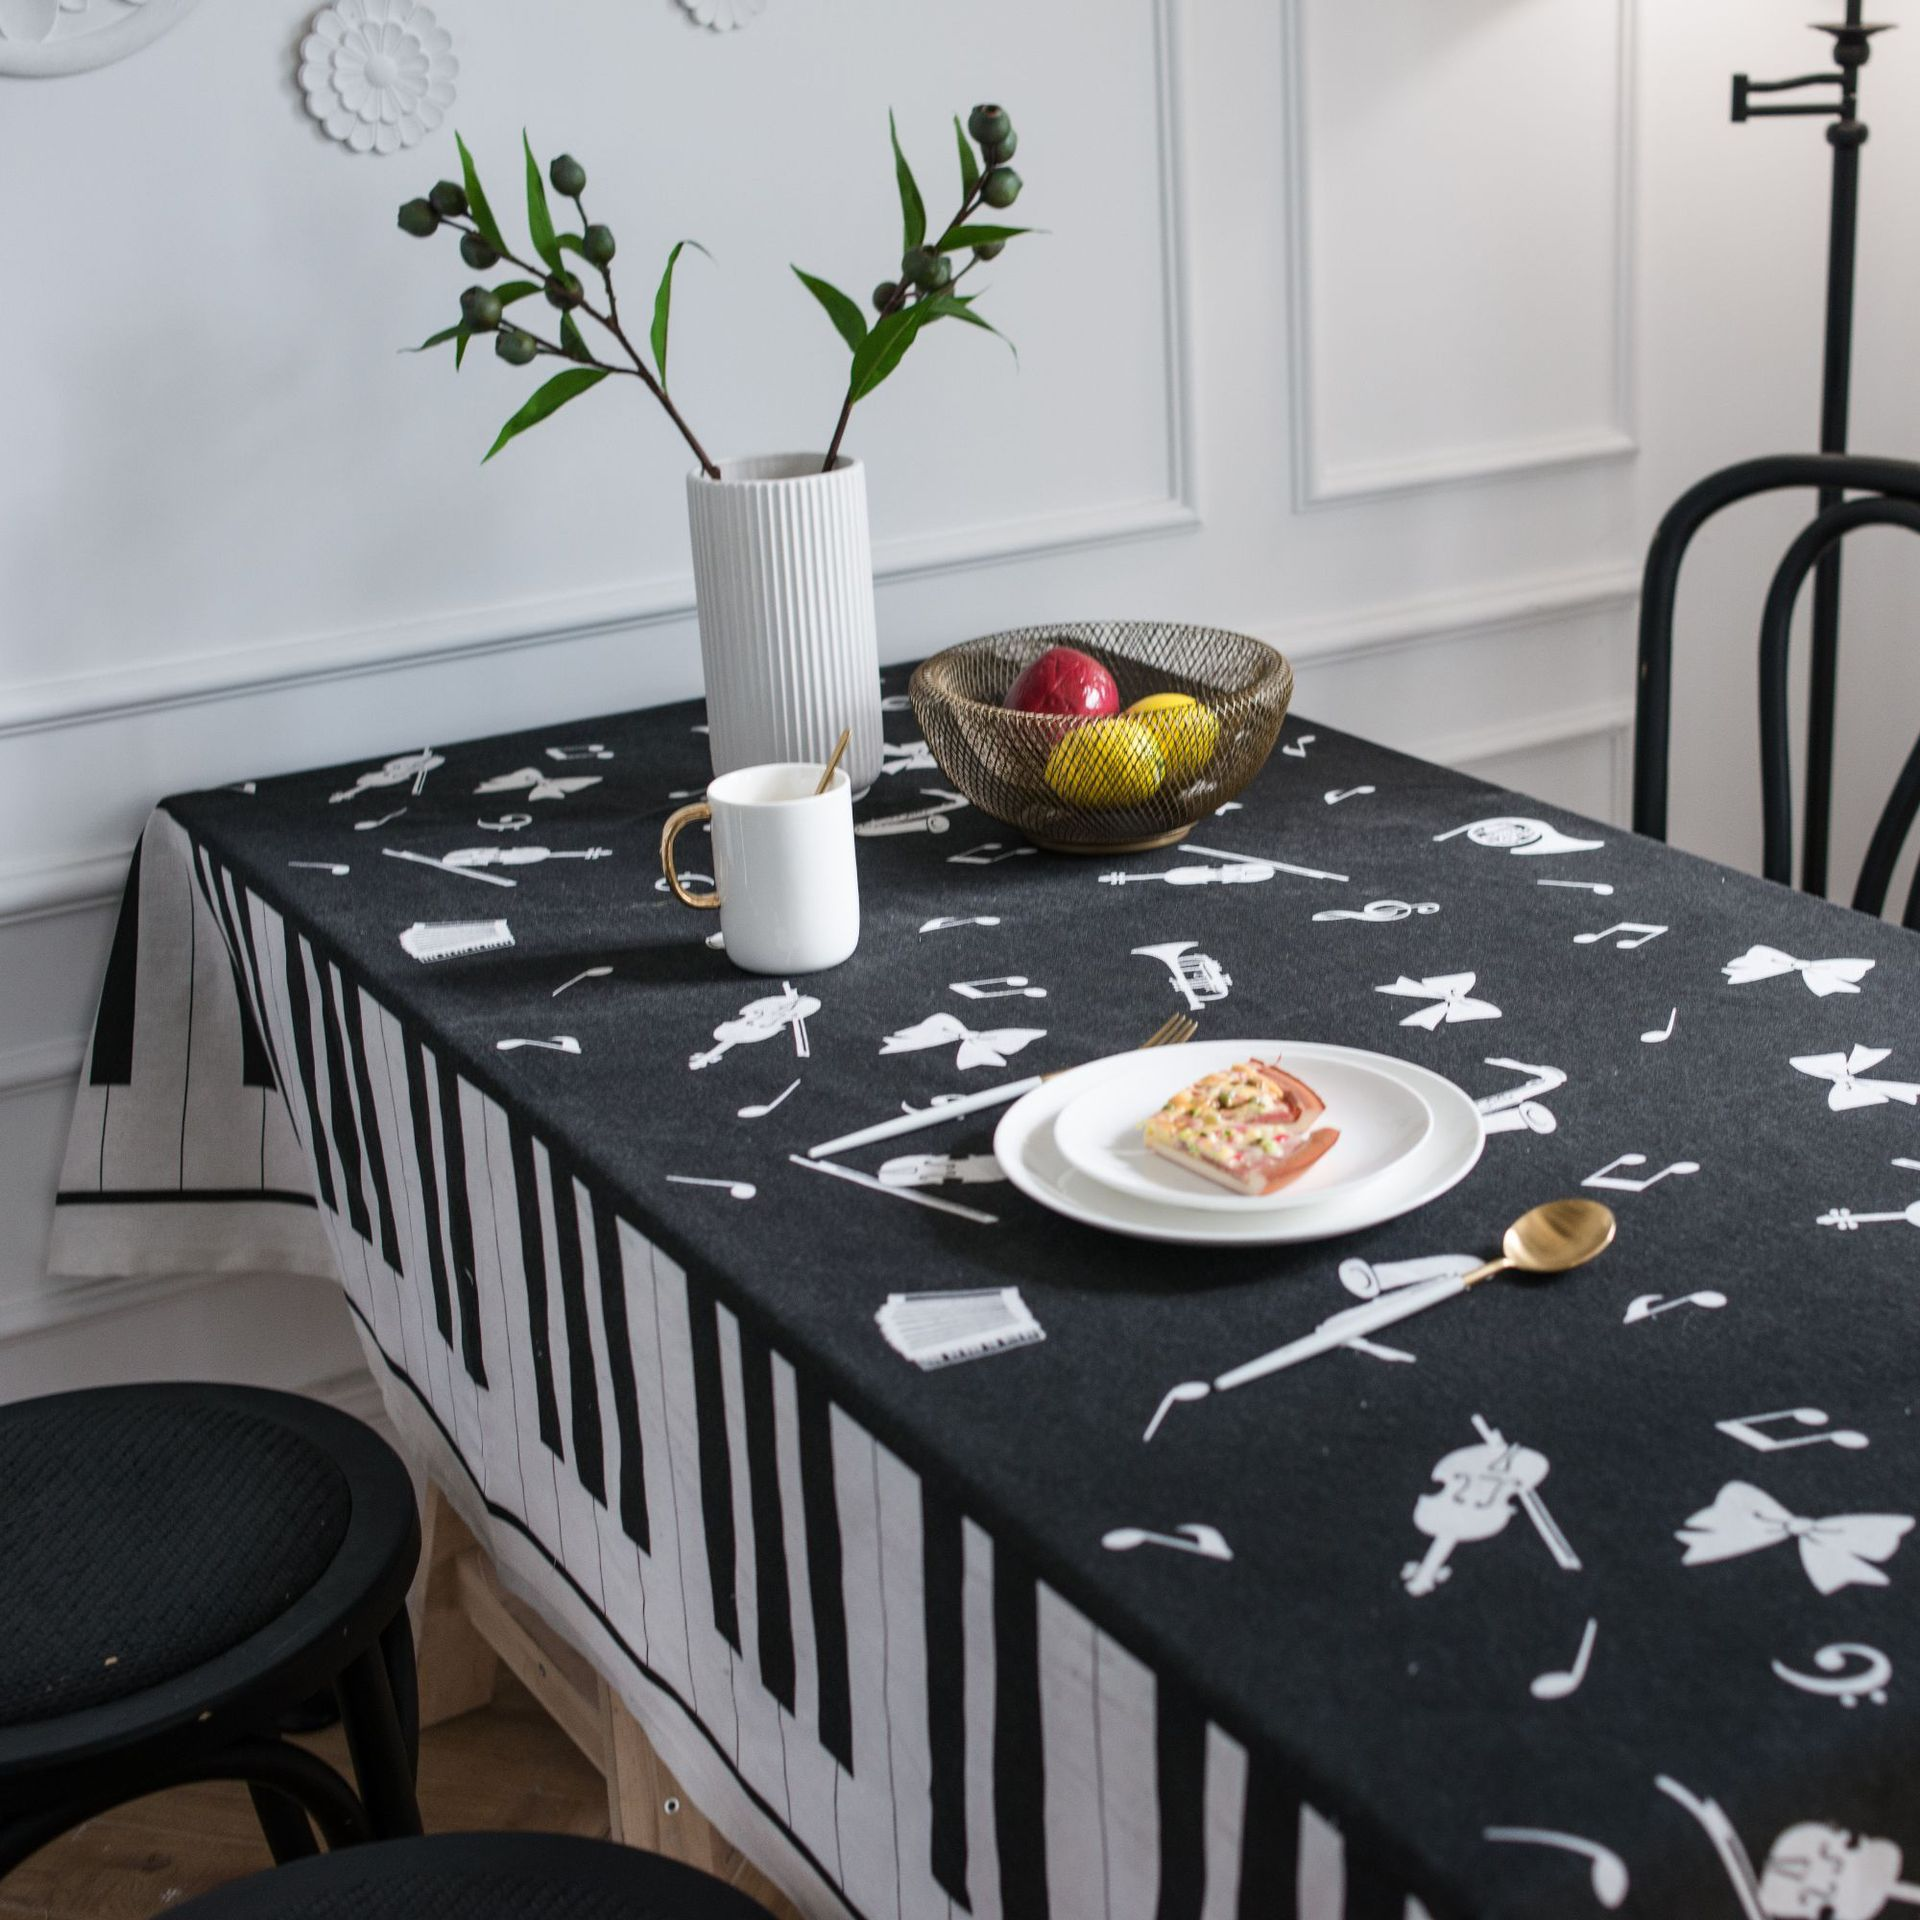 Piano Printed Decorative Tablecloth Rectangular Tablecloths Dining Table Cover Home Kitchen Obrus Nappe Mantel Mesa Tafelkleed image